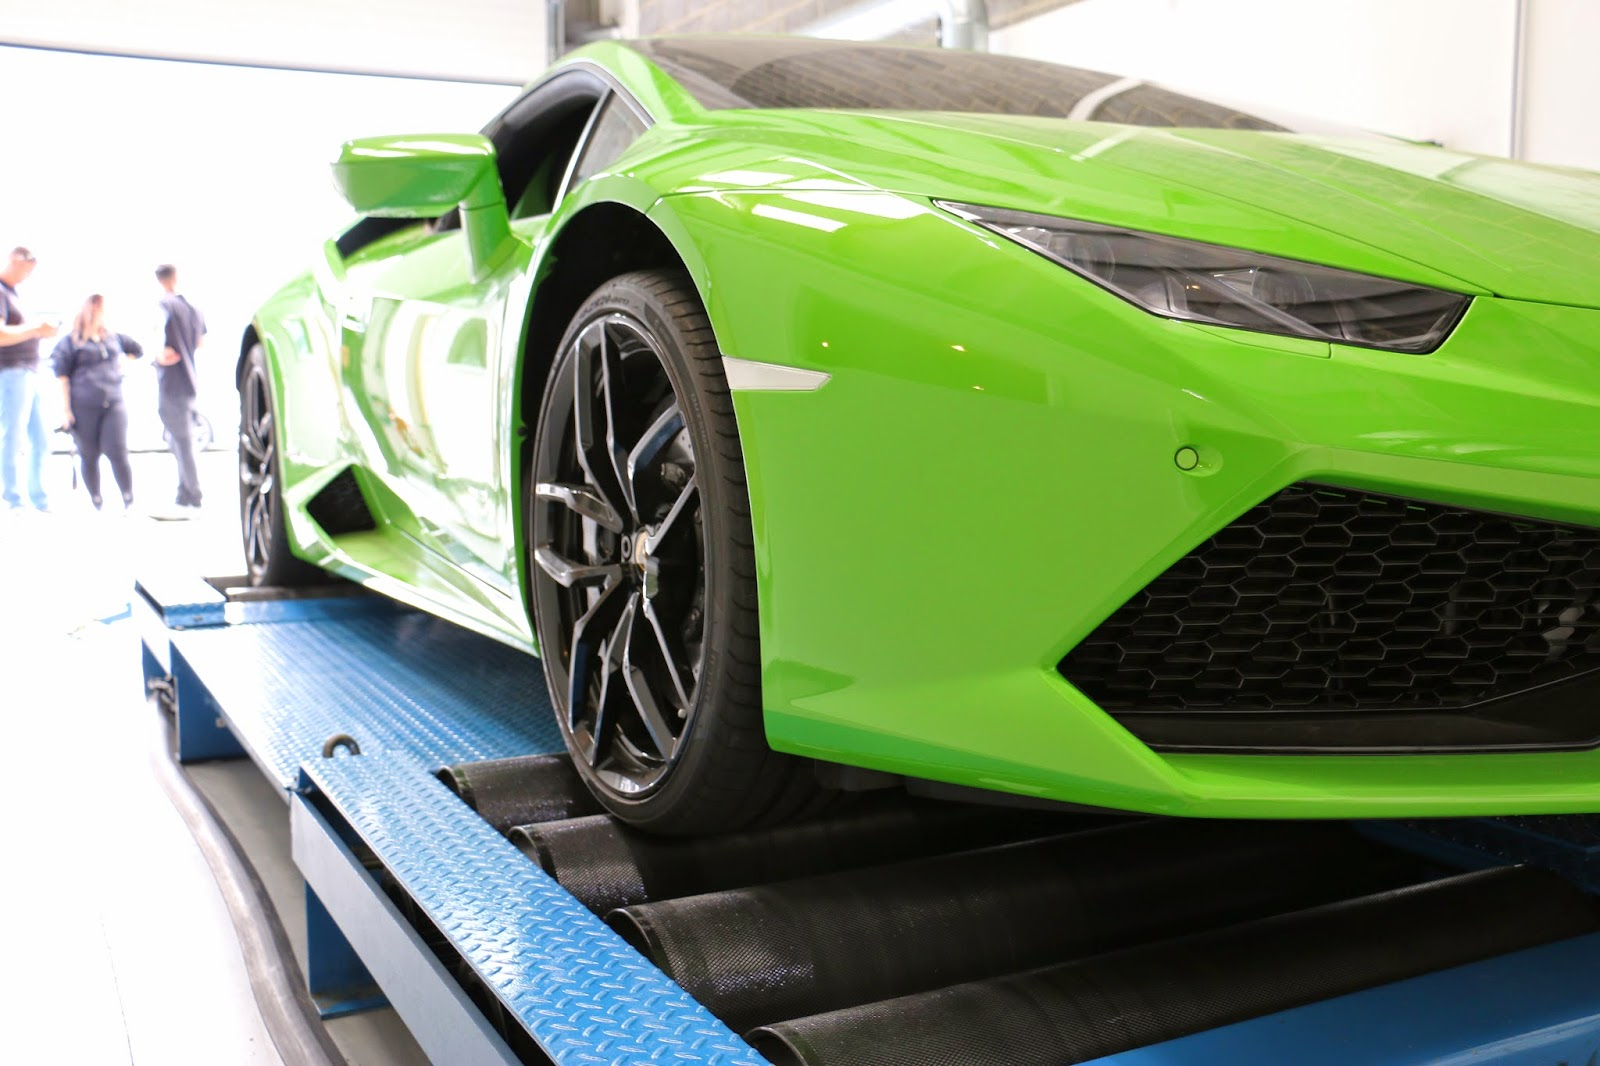 Elegant Lamborghini Huracan On Dyno For Engine U0026 Gerbox Remap Lamborghini Huracan  Dyno Tuning